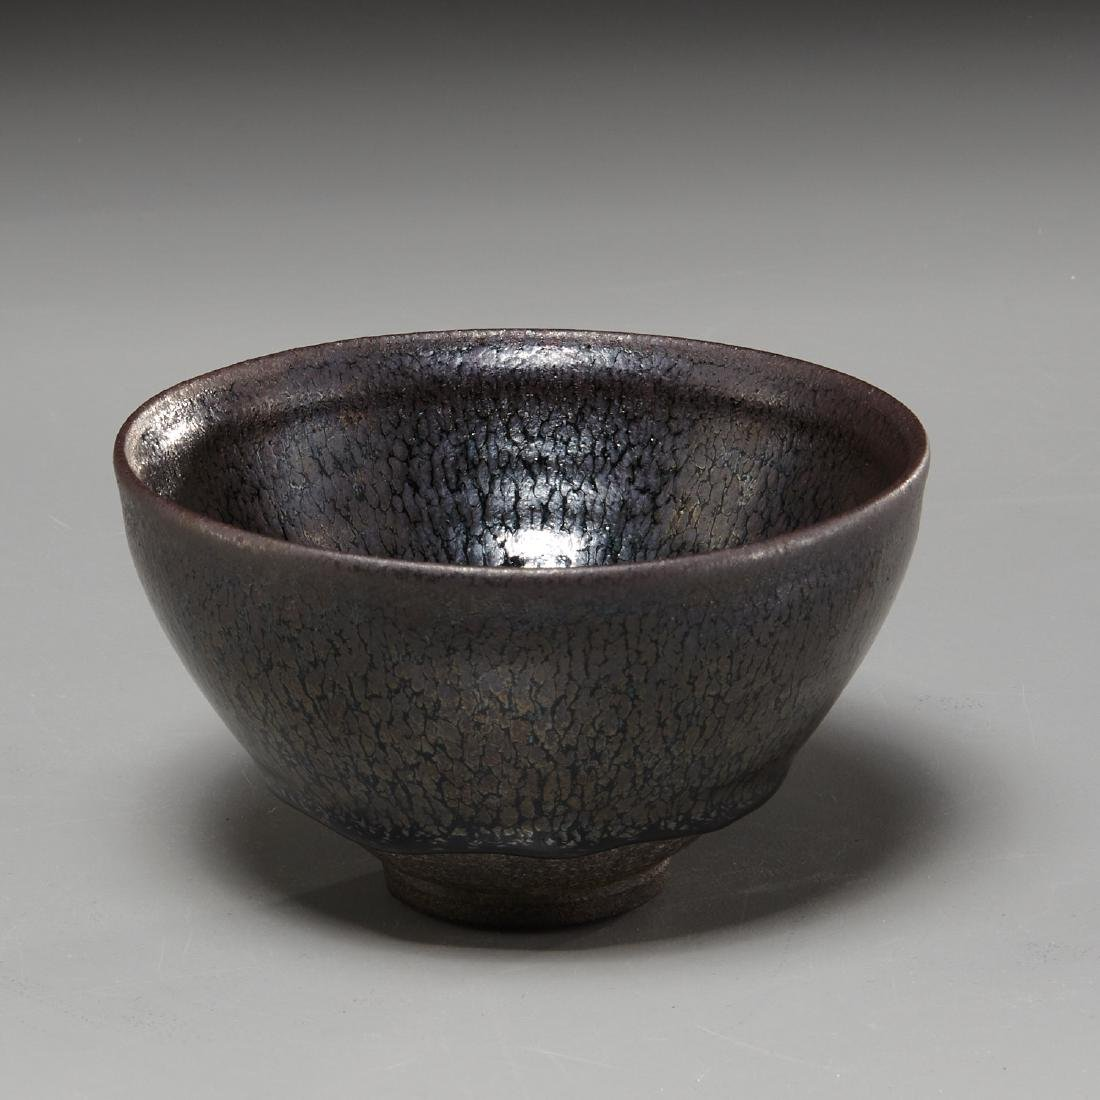 Chinese Jian ware glazed bowl